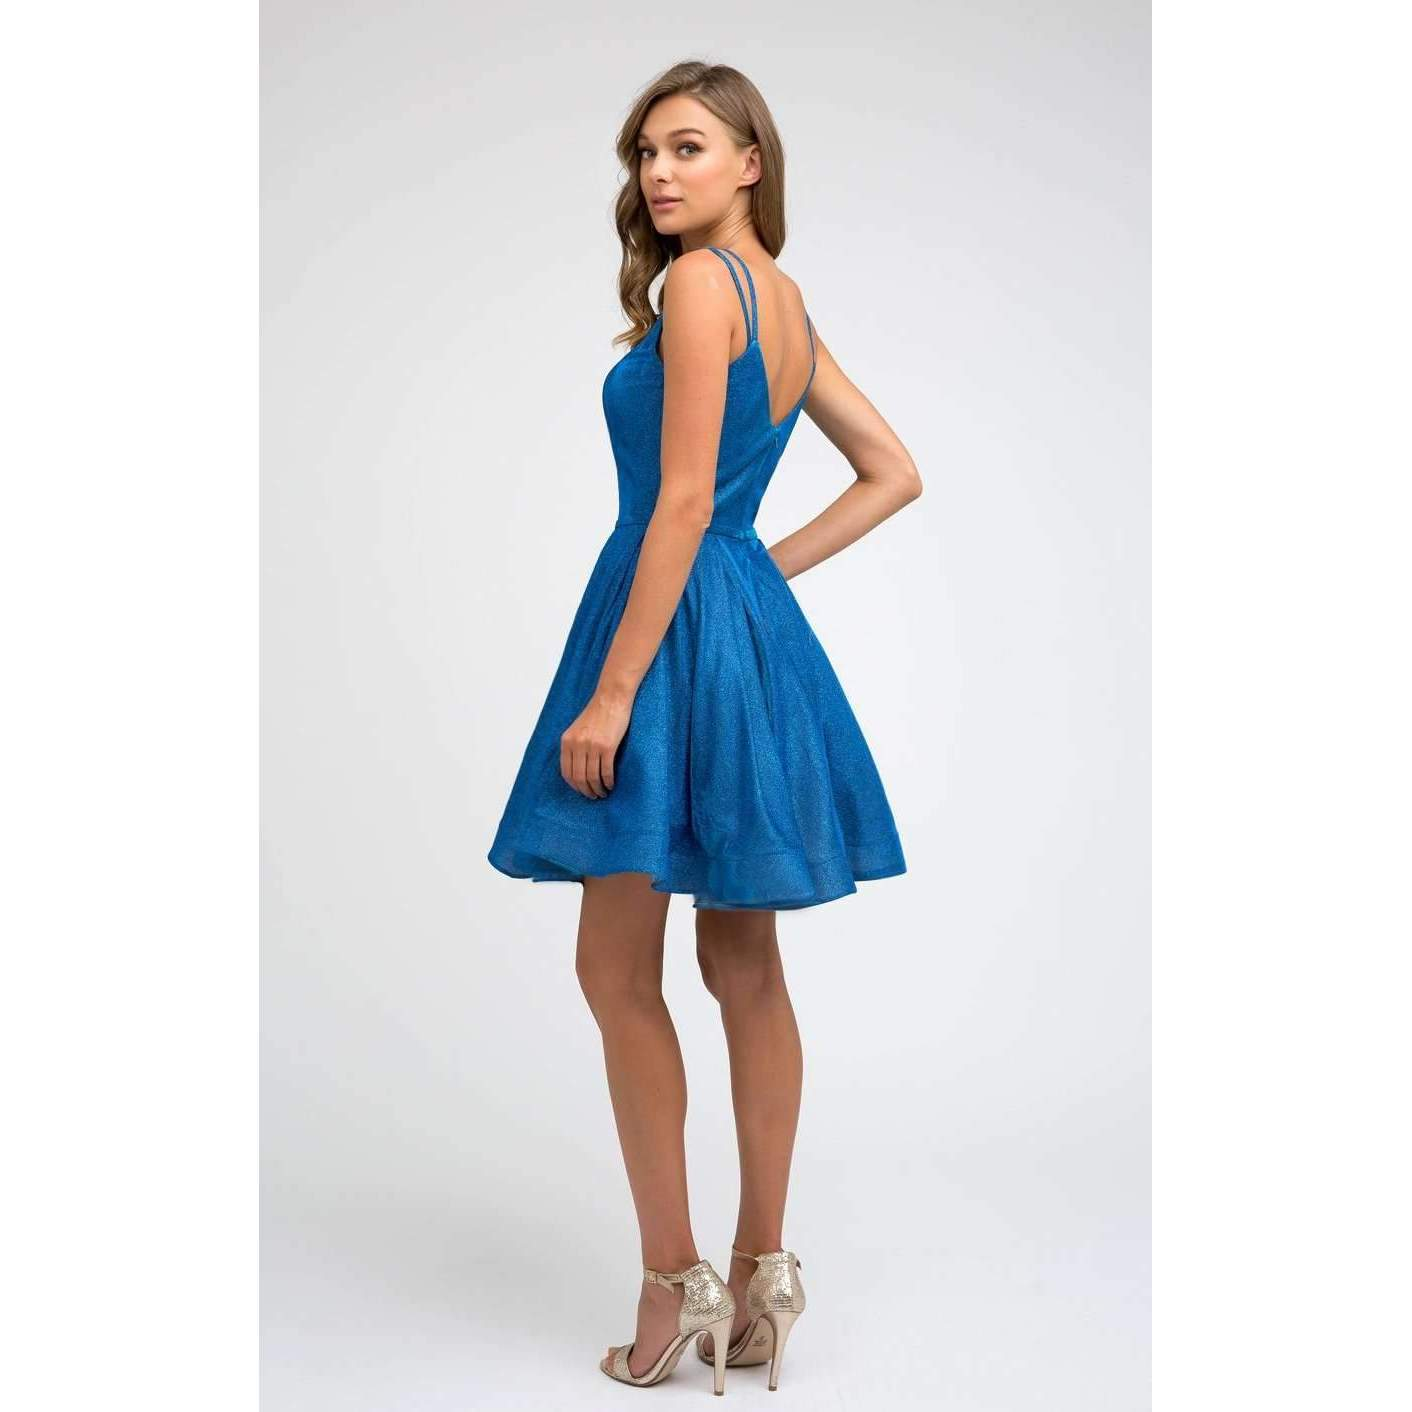 Glitter Double Straps Flare Short Dress 833 - Julietdresses